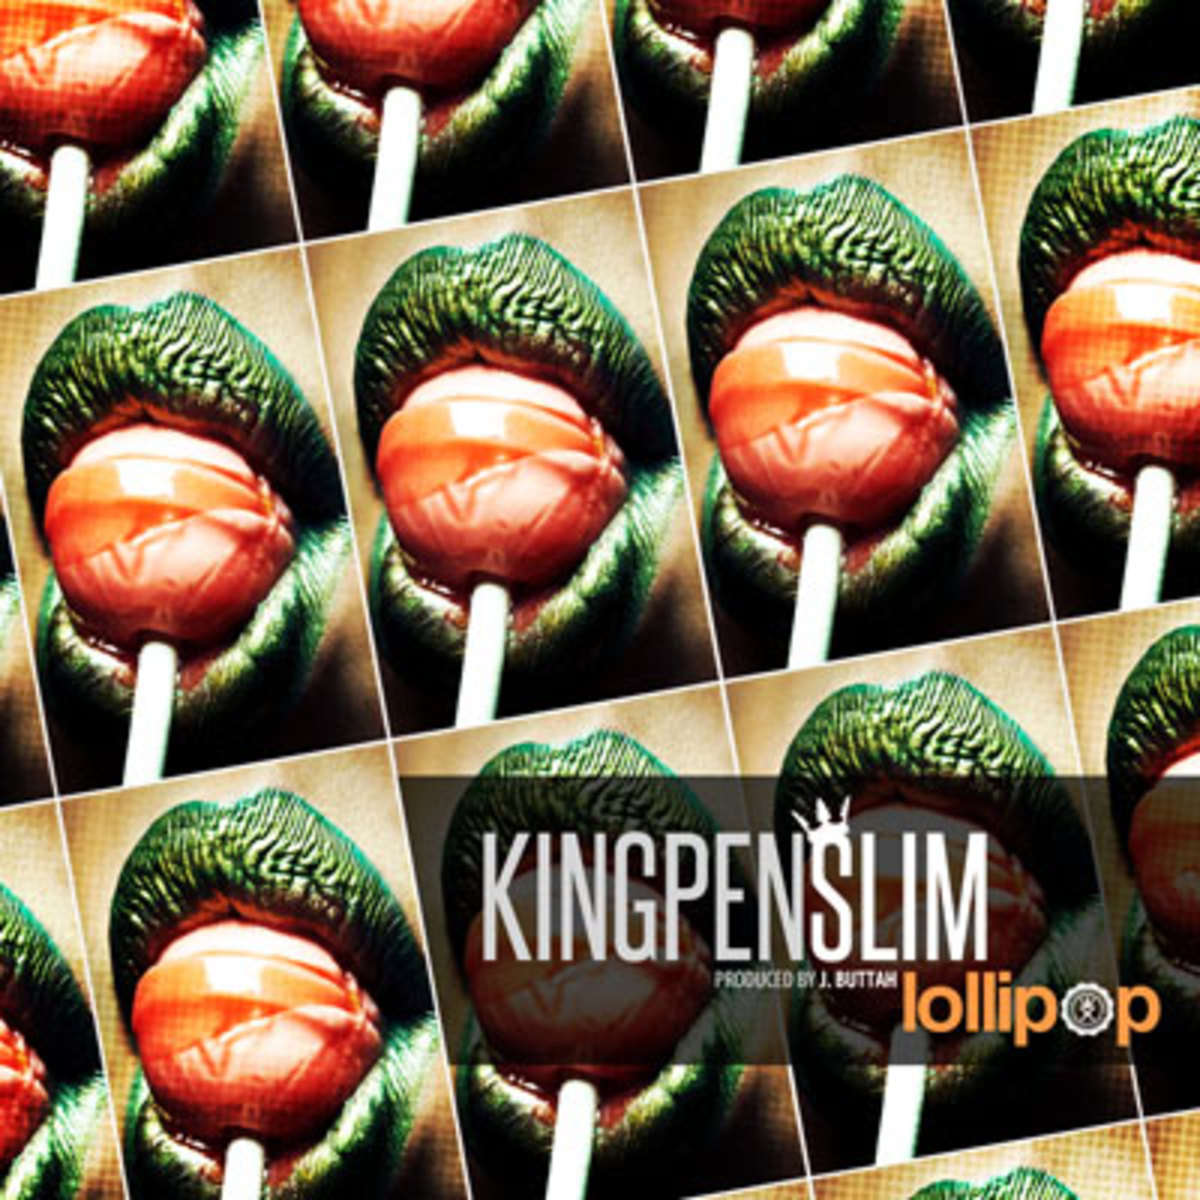 kingpenslim-lollipop.jpg